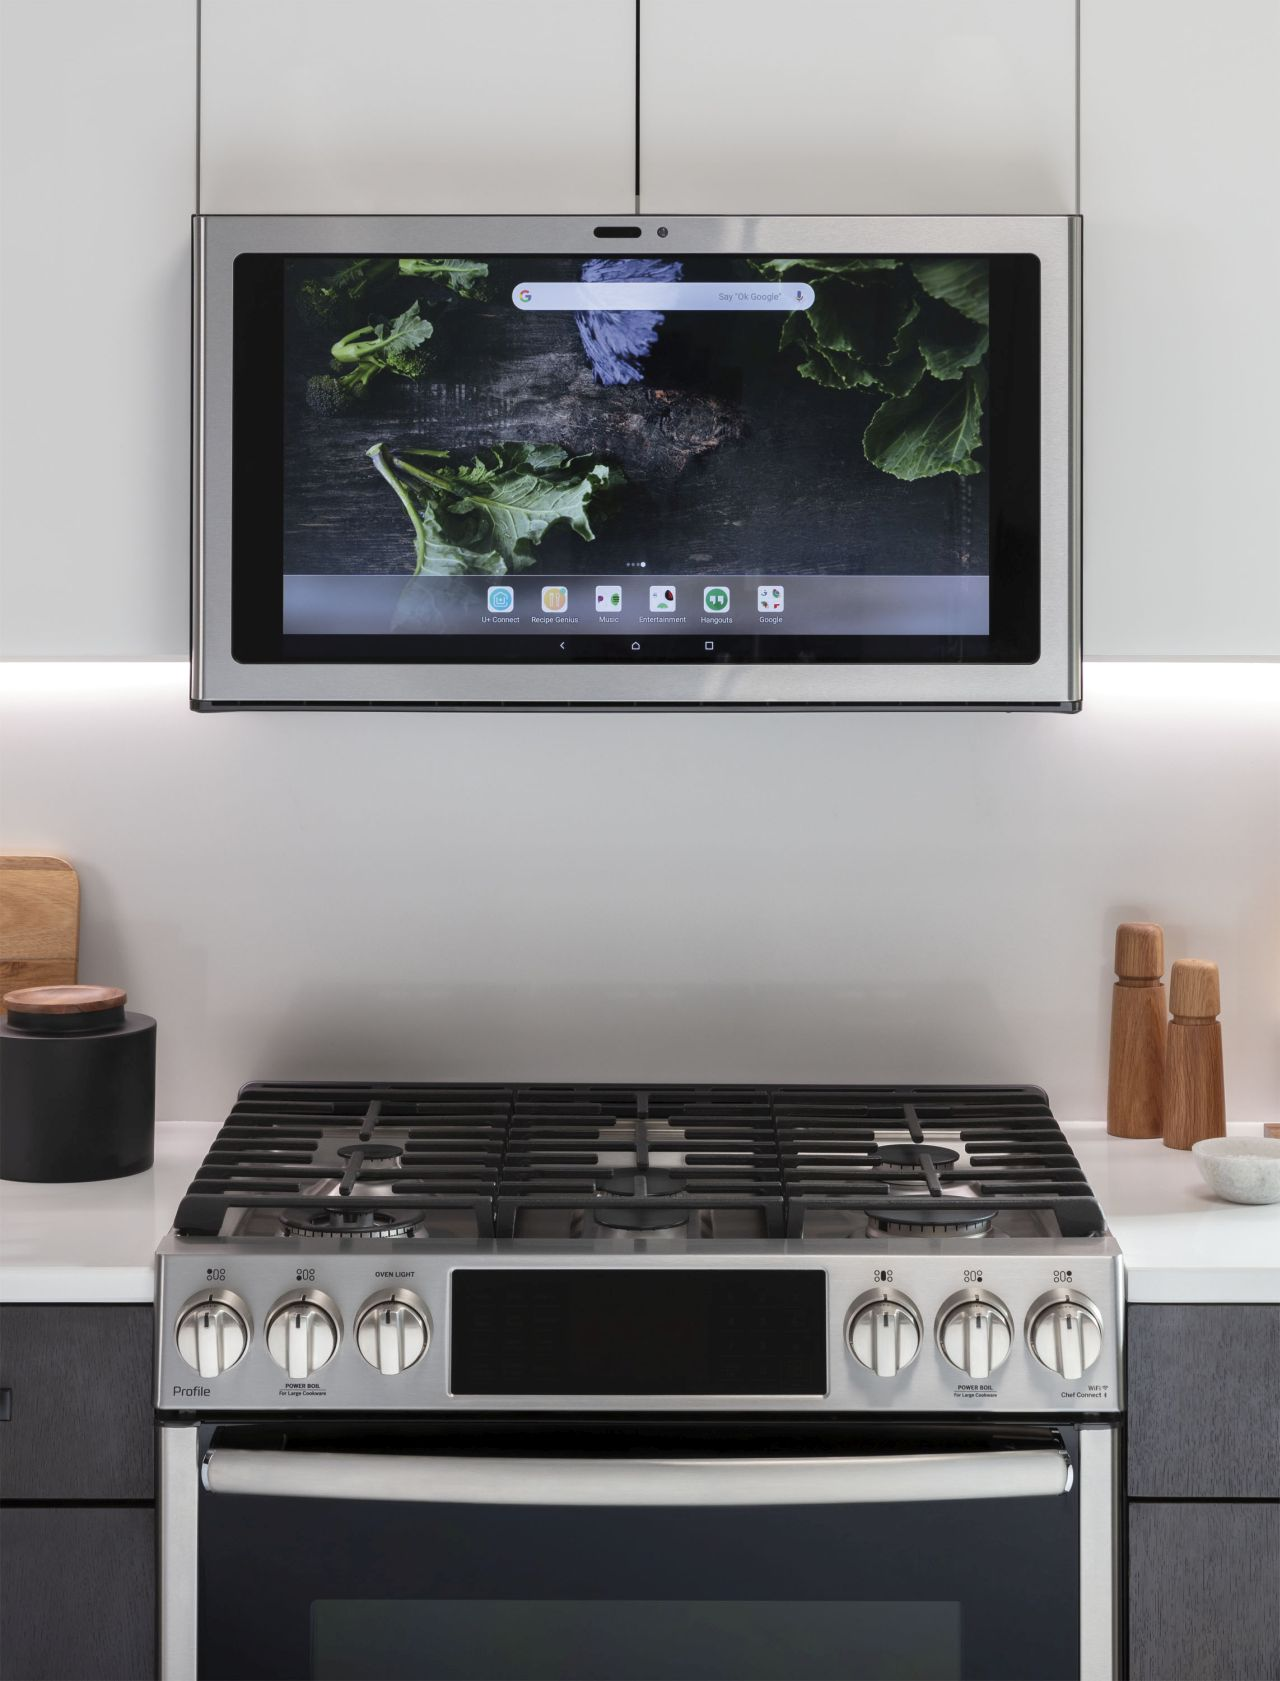 GE Appliances' smart Kitchen Hub provides convenient access to recipes, music, video chat and more